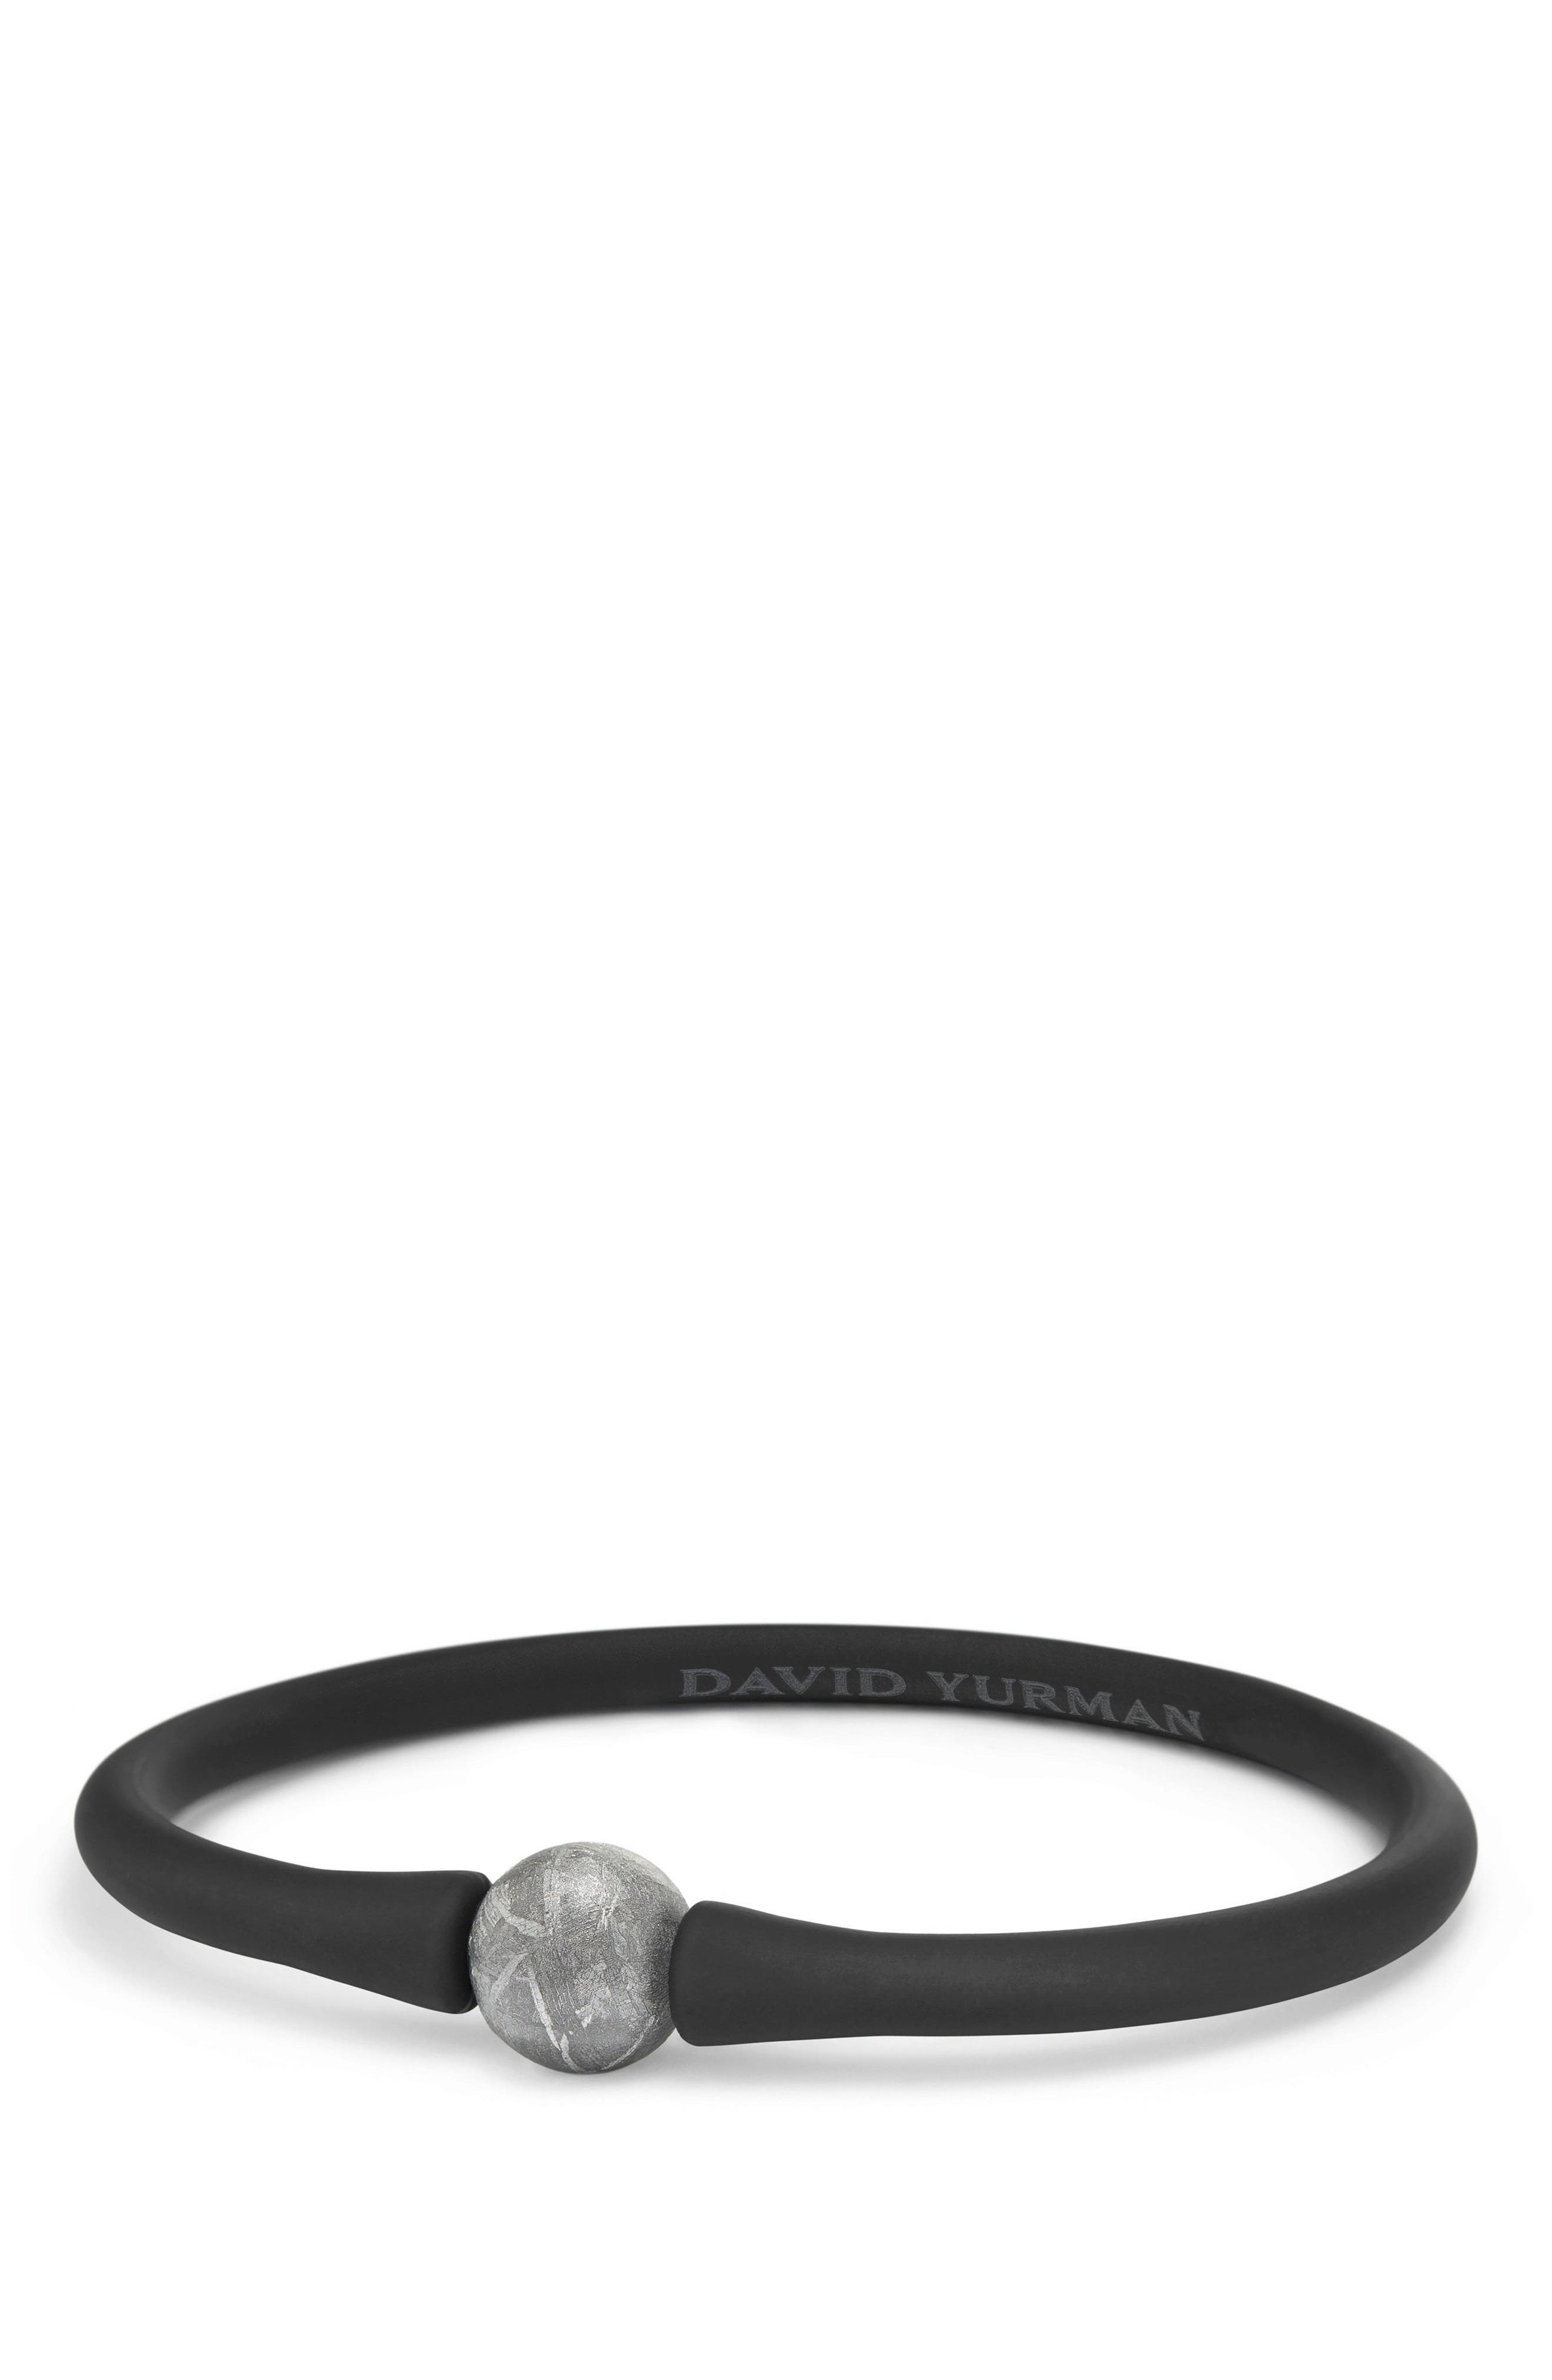 DAVID YURMAN, Spiritual Beads Stone Rubber Bead Bracelet, Main thumbnail 1, color, METEORITE